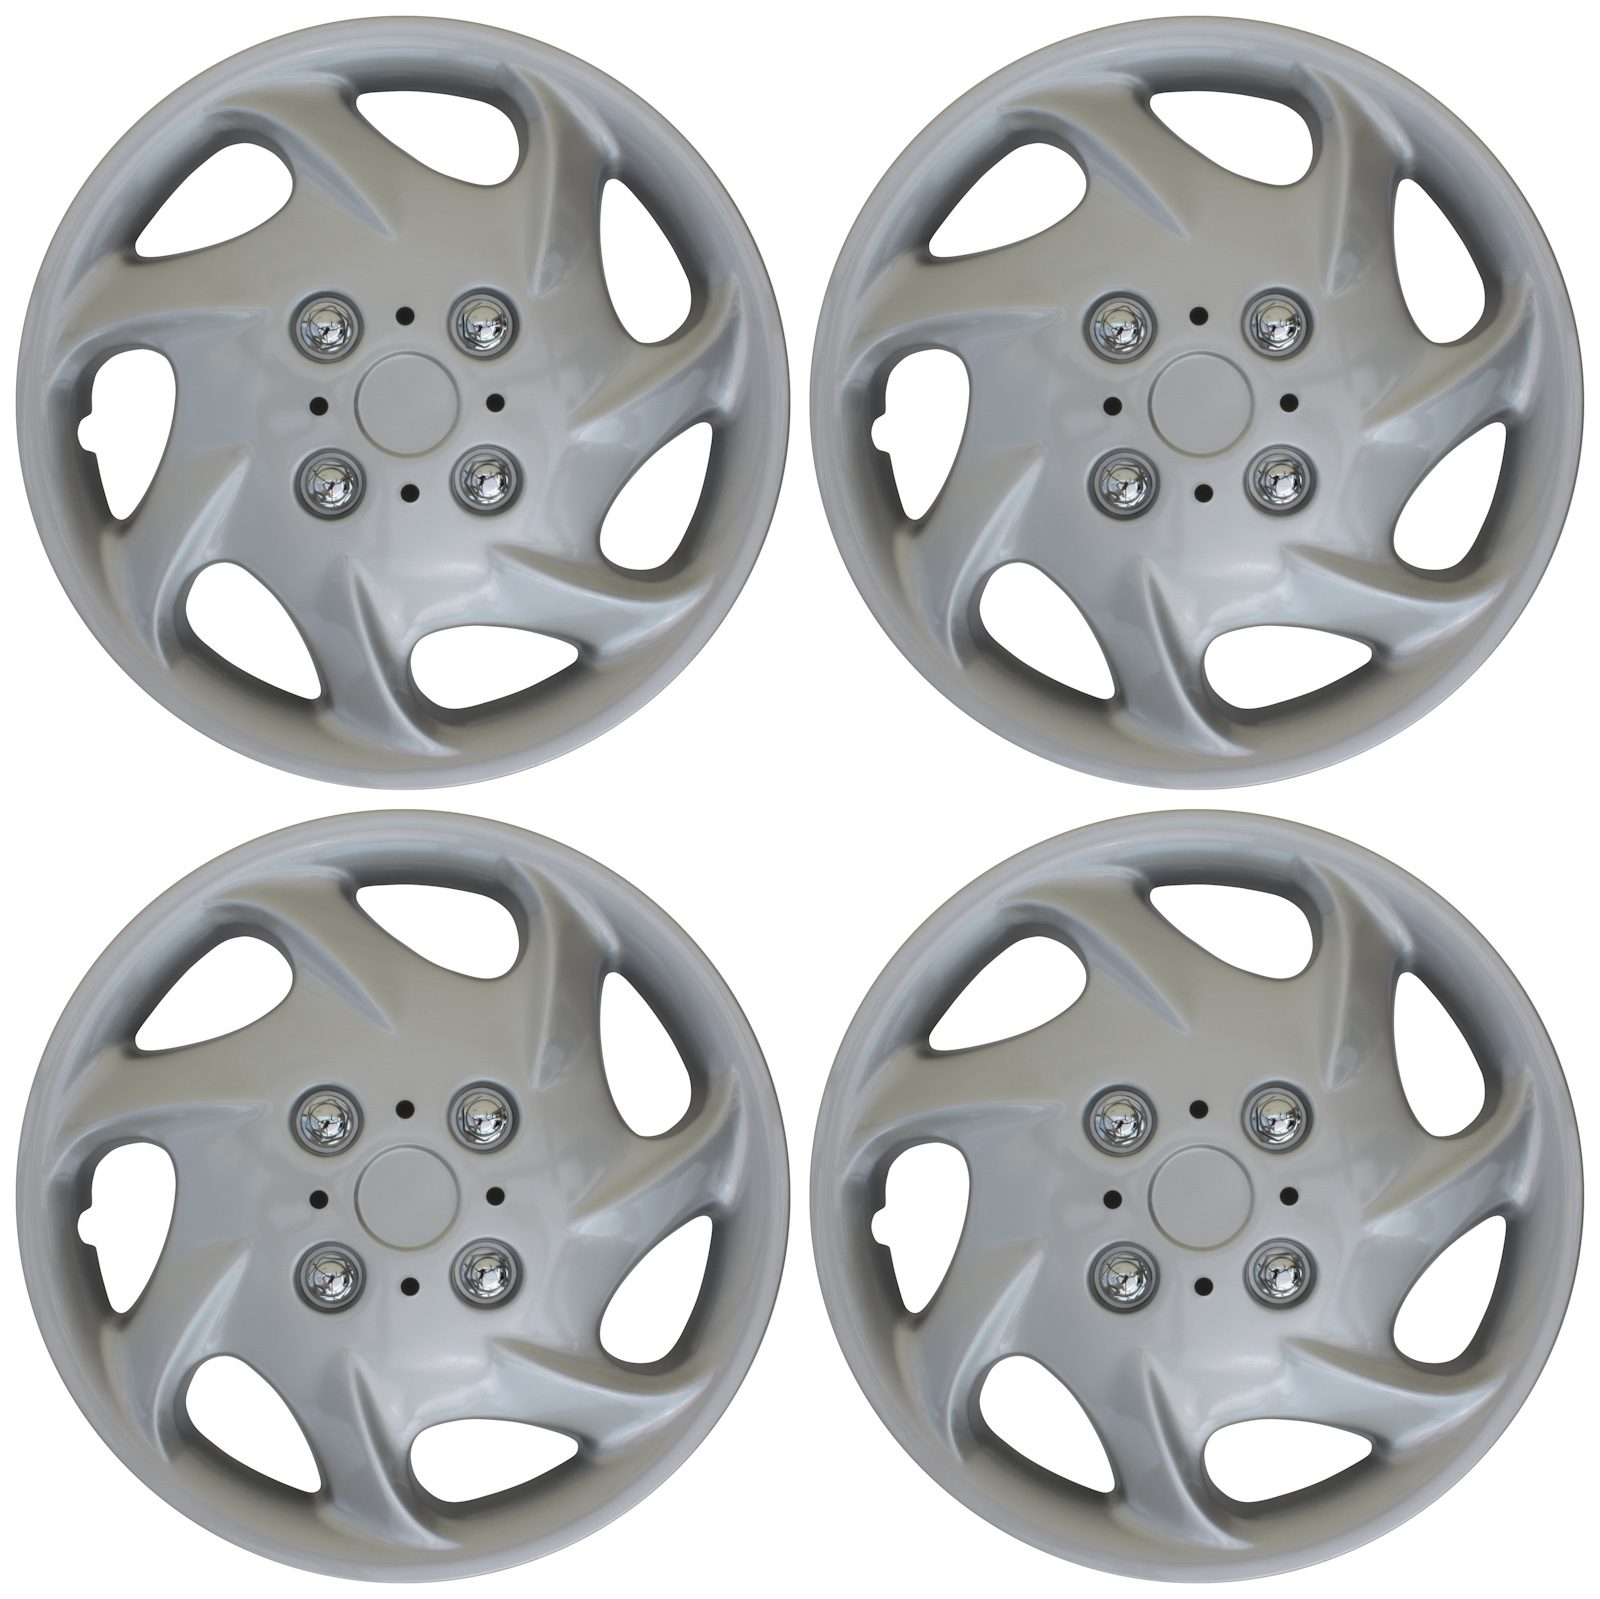 hight resolution of 4 pc new universal hubcaps abs silver 15 inch wheel cover hub caps covers cap